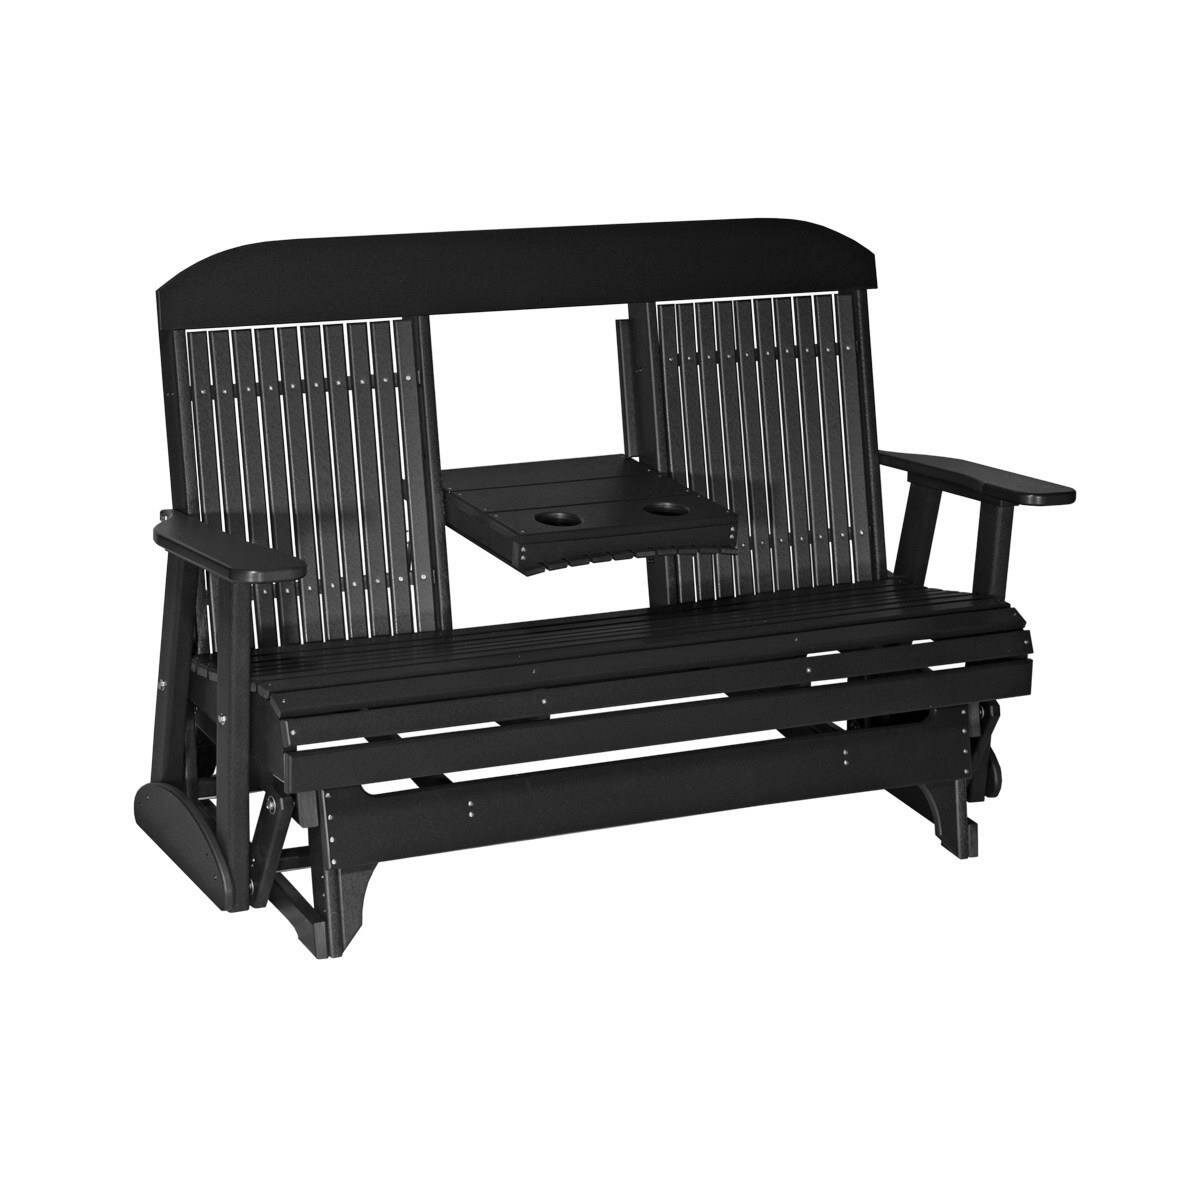 Clayford Classic Glider Bench With Classic Glider Benches (View 7 of 25)